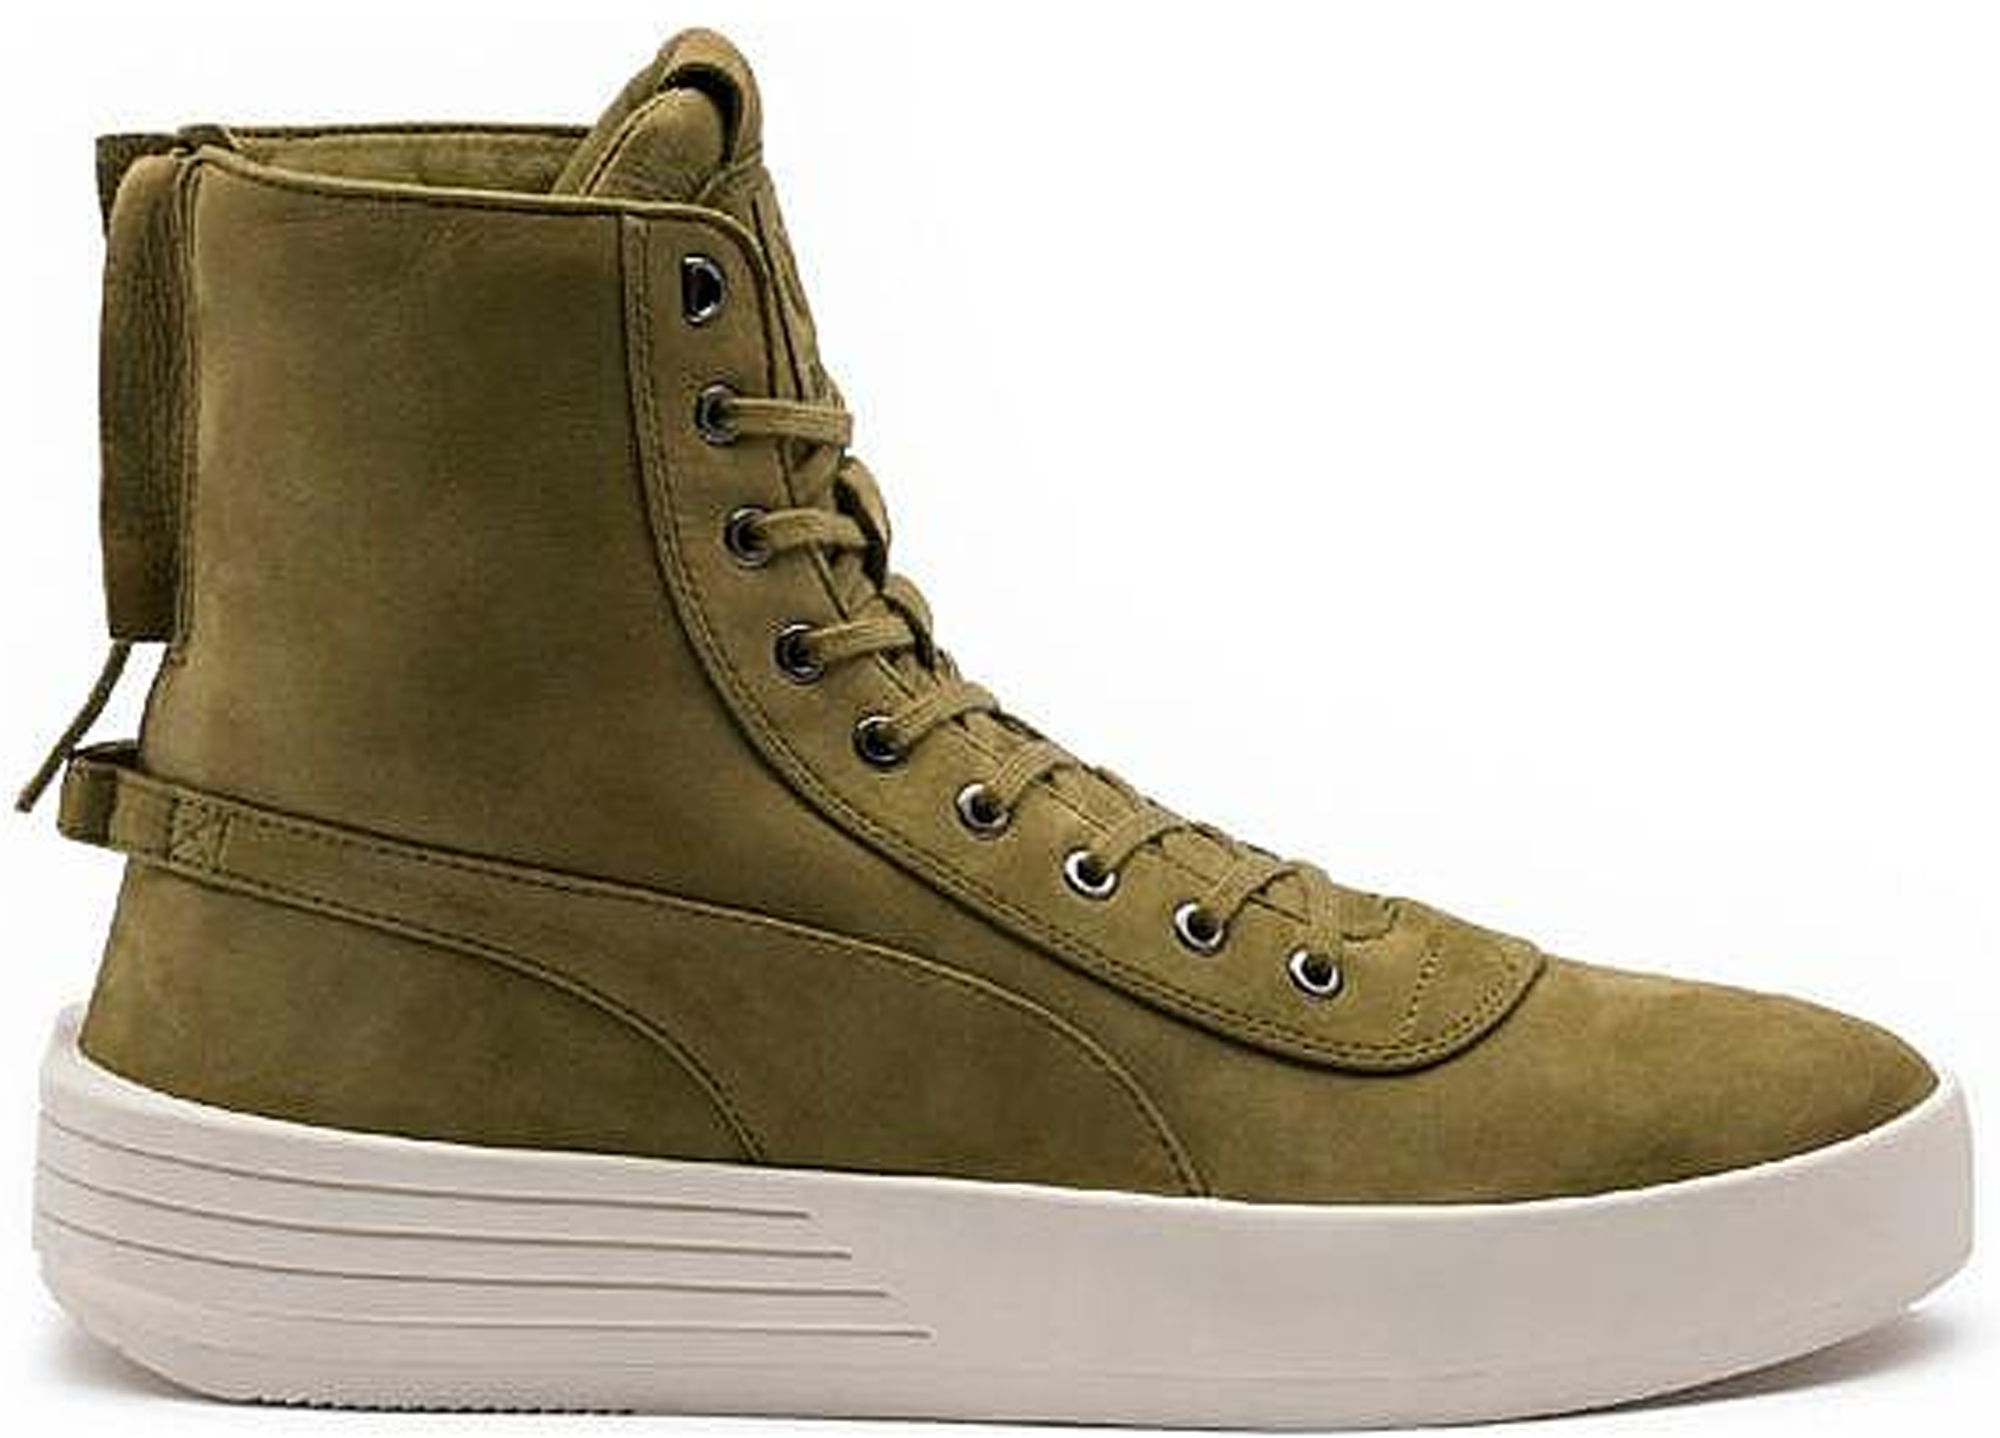 Puma Parallel The Weeknd Olive